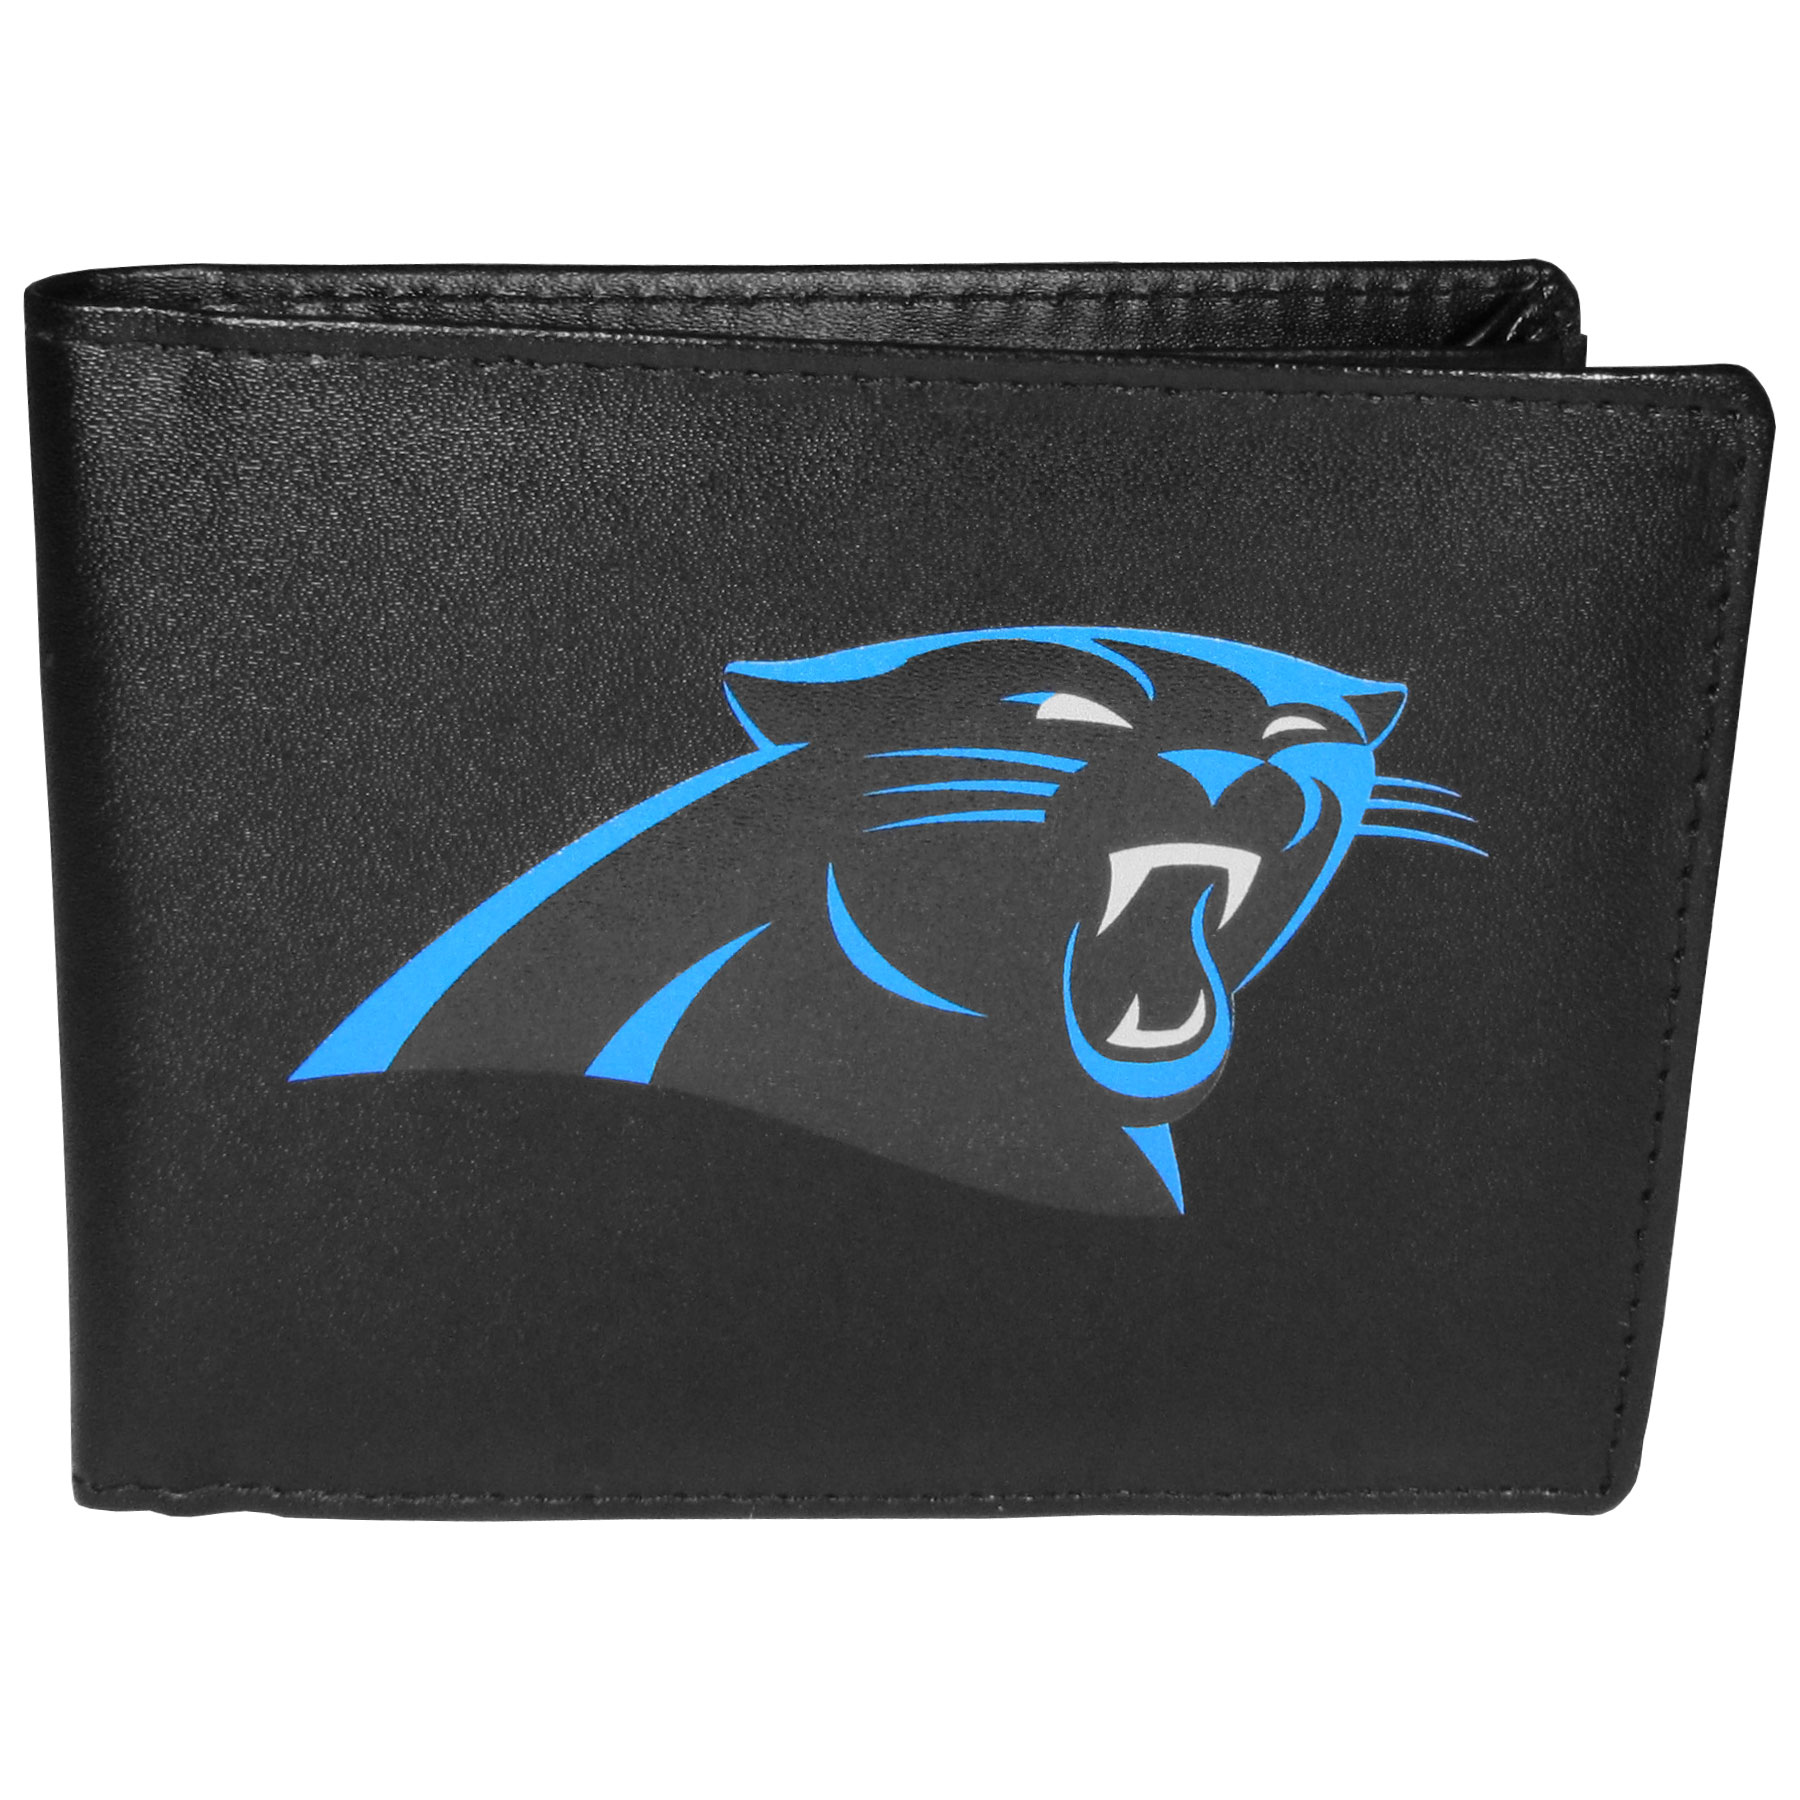 Carolina Panthers Bi-fold Wallet Large Logo - Sports fans do not have to sacrifice style with this classic bi-fold wallet that sports the Carolina Panthers extra large logo. This men's fashion accessory has a leather grain look and expert craftmanship for a quality wallet at a great price. The wallet features inner credit card slots, windowed ID slot and a large billfold pocket. The front of the wallet features a printed team logo.